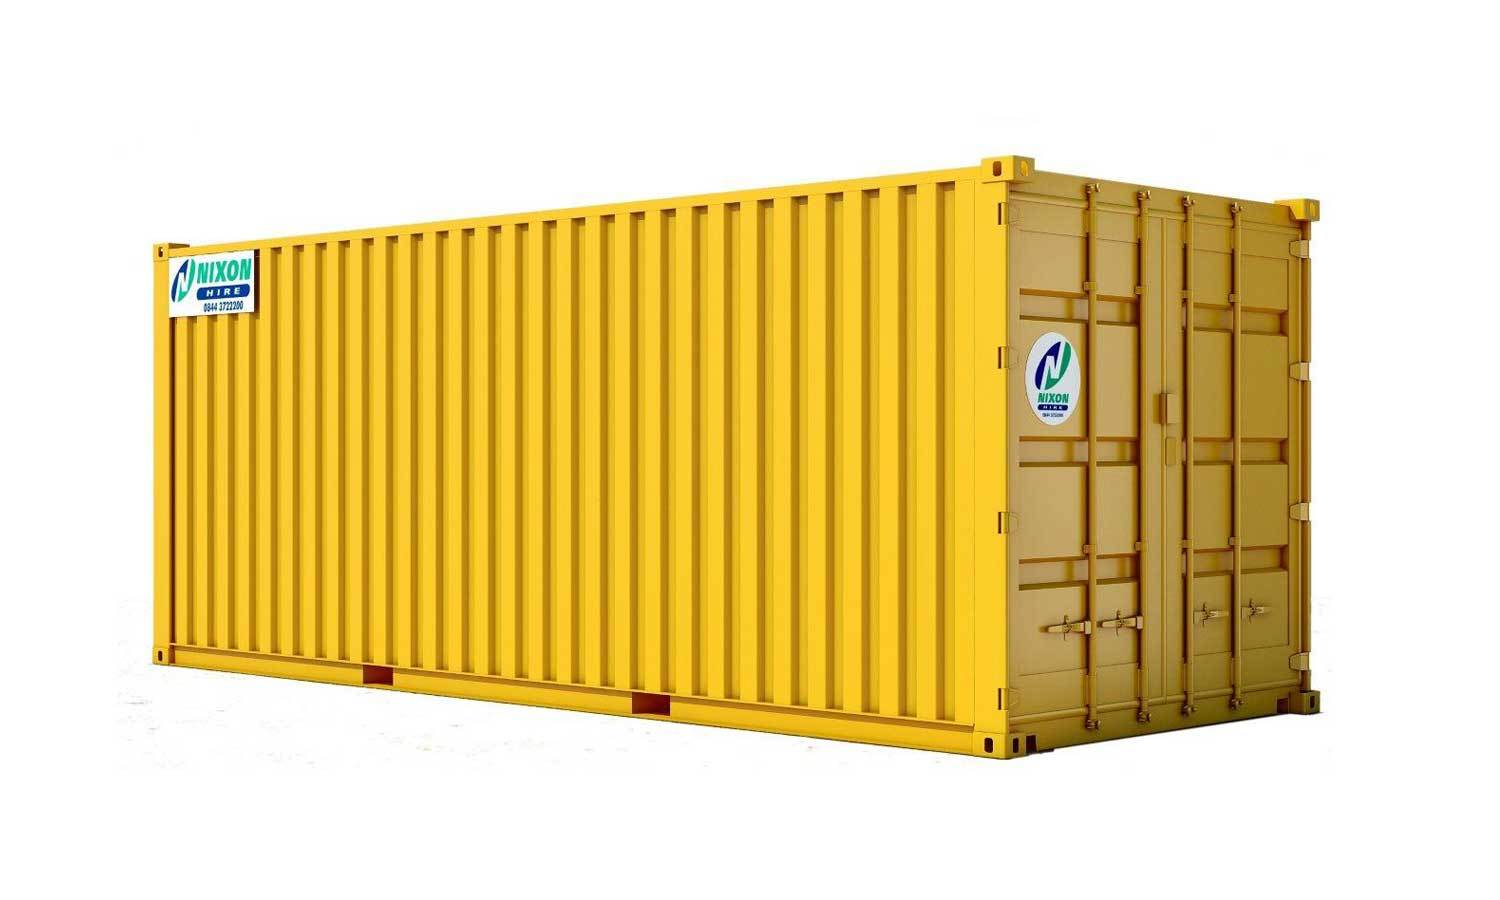 Exterior View Of 20 Foot High Cube Security Container Cut Out